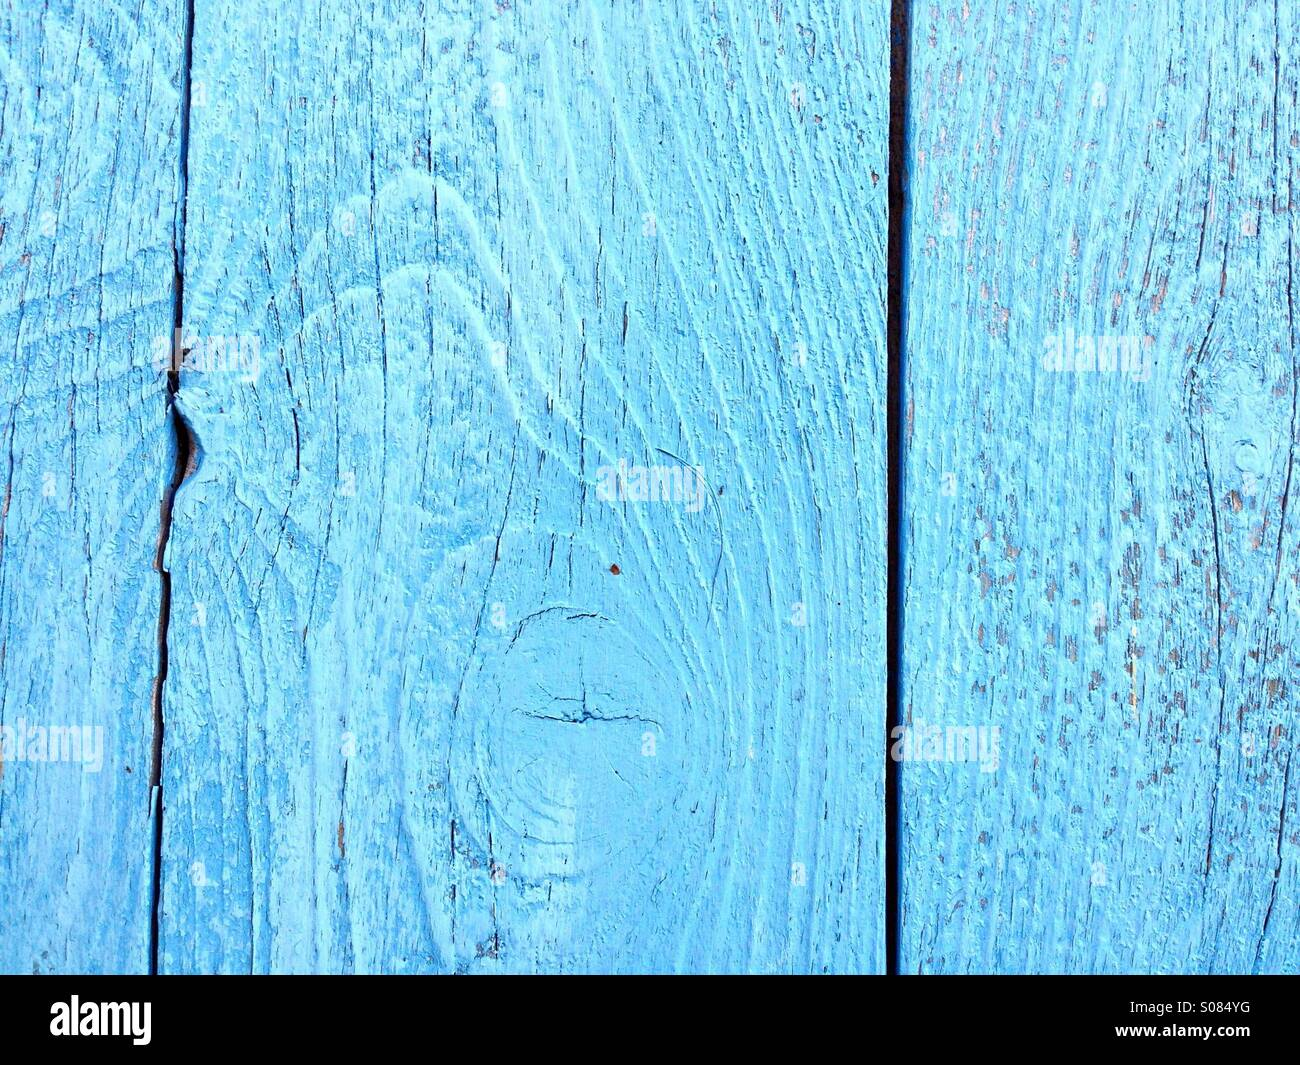 Wooden blue planks - Stock Image